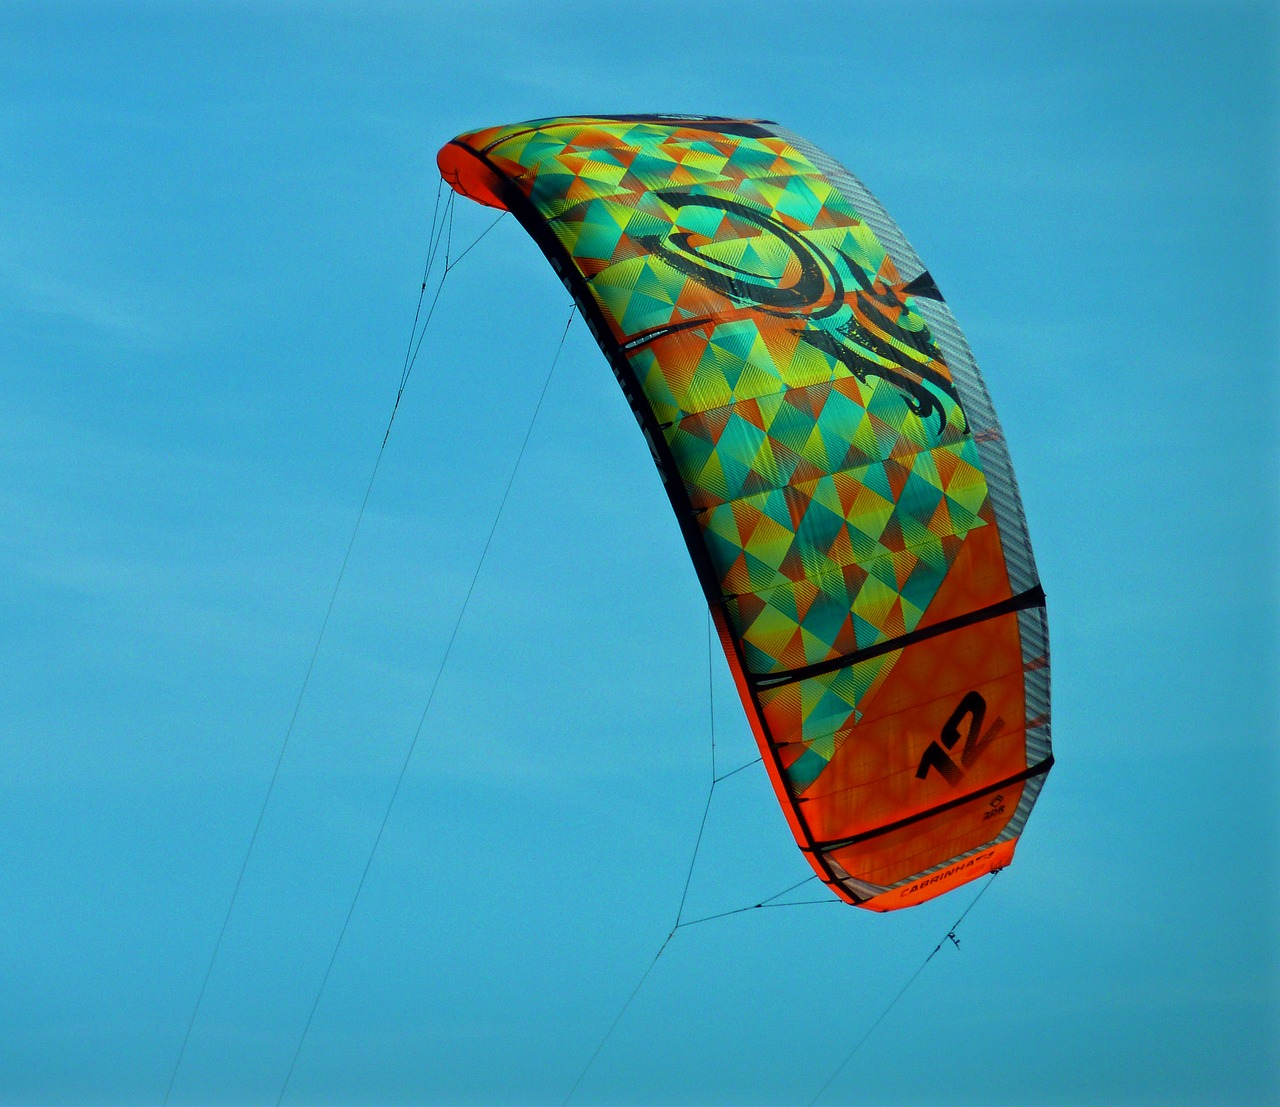 kite kiting kite surfing free photo